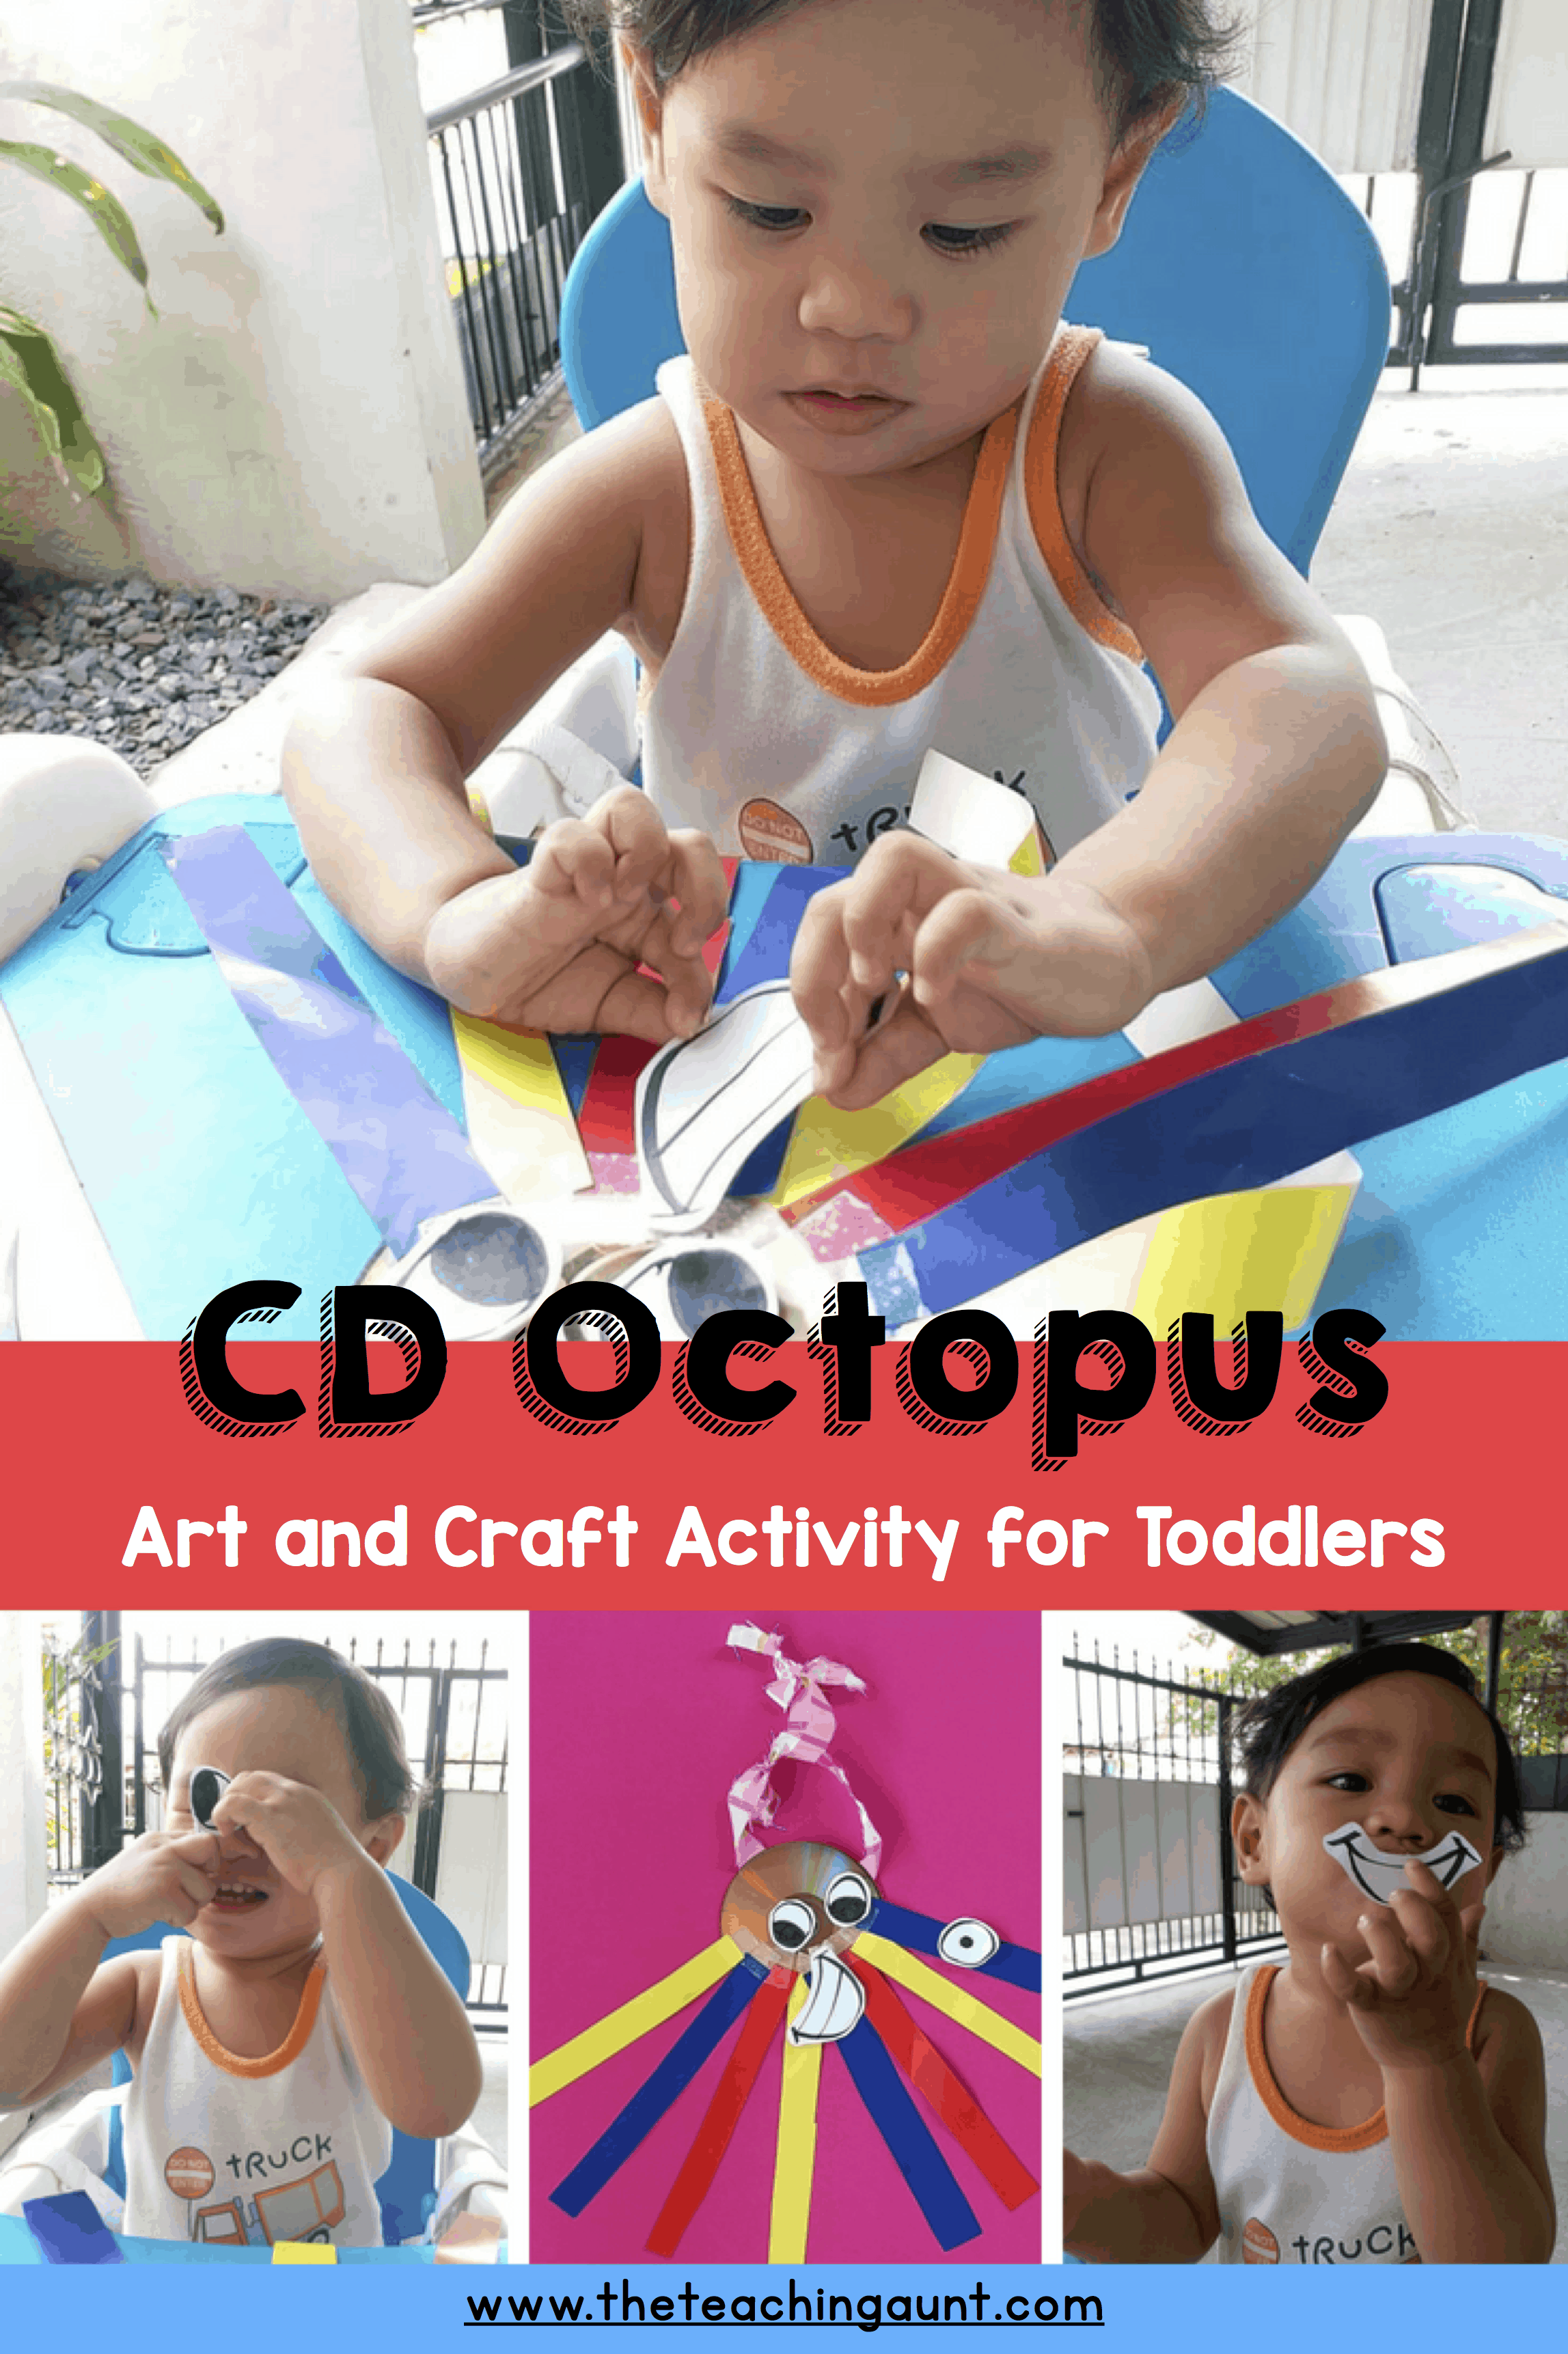 CD Octopus Art and Craft Activity for Toddlers P1